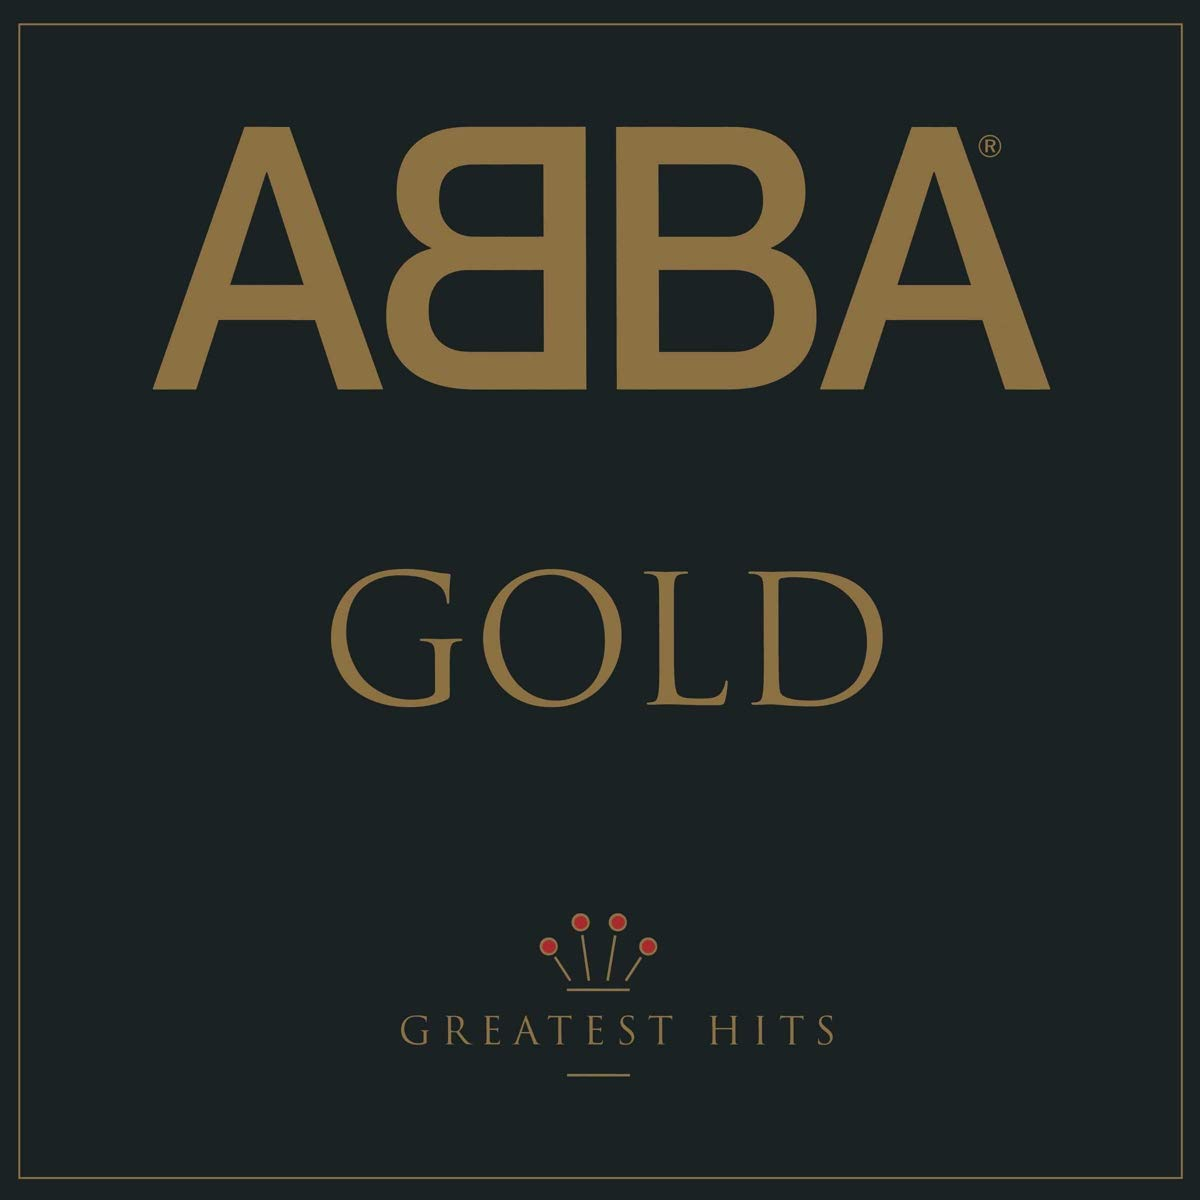 ABBA – Gold Greatest Hits (1992) [FLAC]